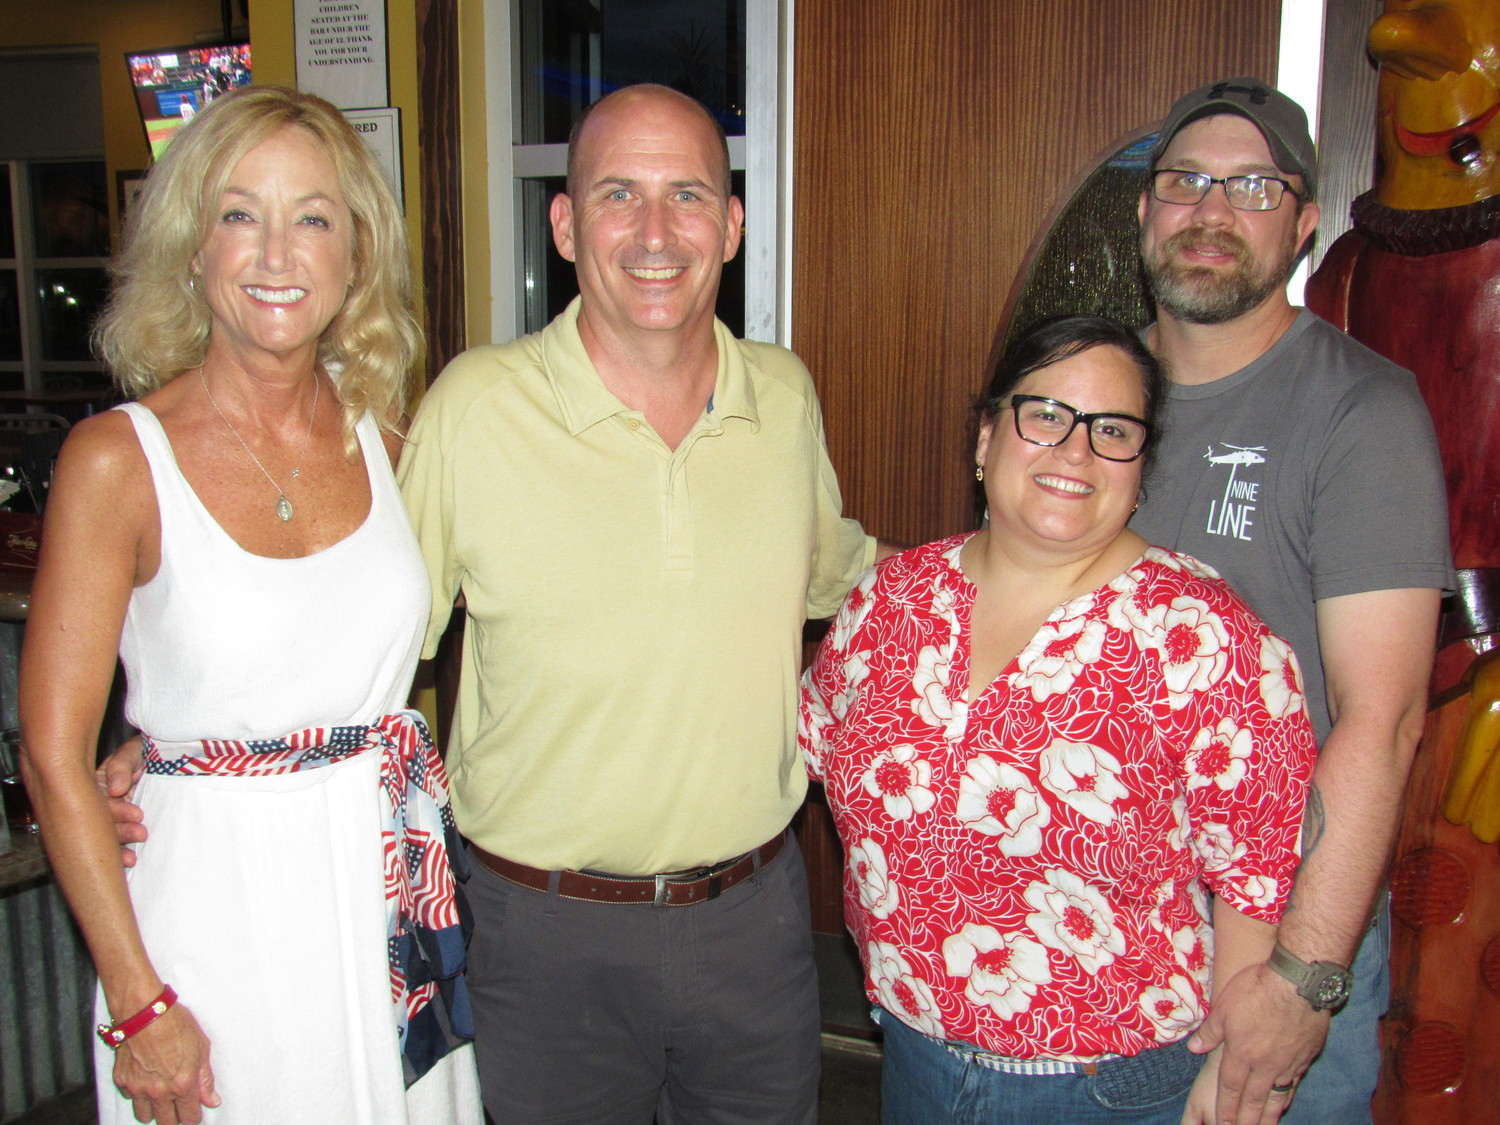 St. Johns County Republican Party Second Vice Chair Diane Scherff gathers with School Board District 4 candidate Denver Cook and Elizabeth and Chris Chatham.